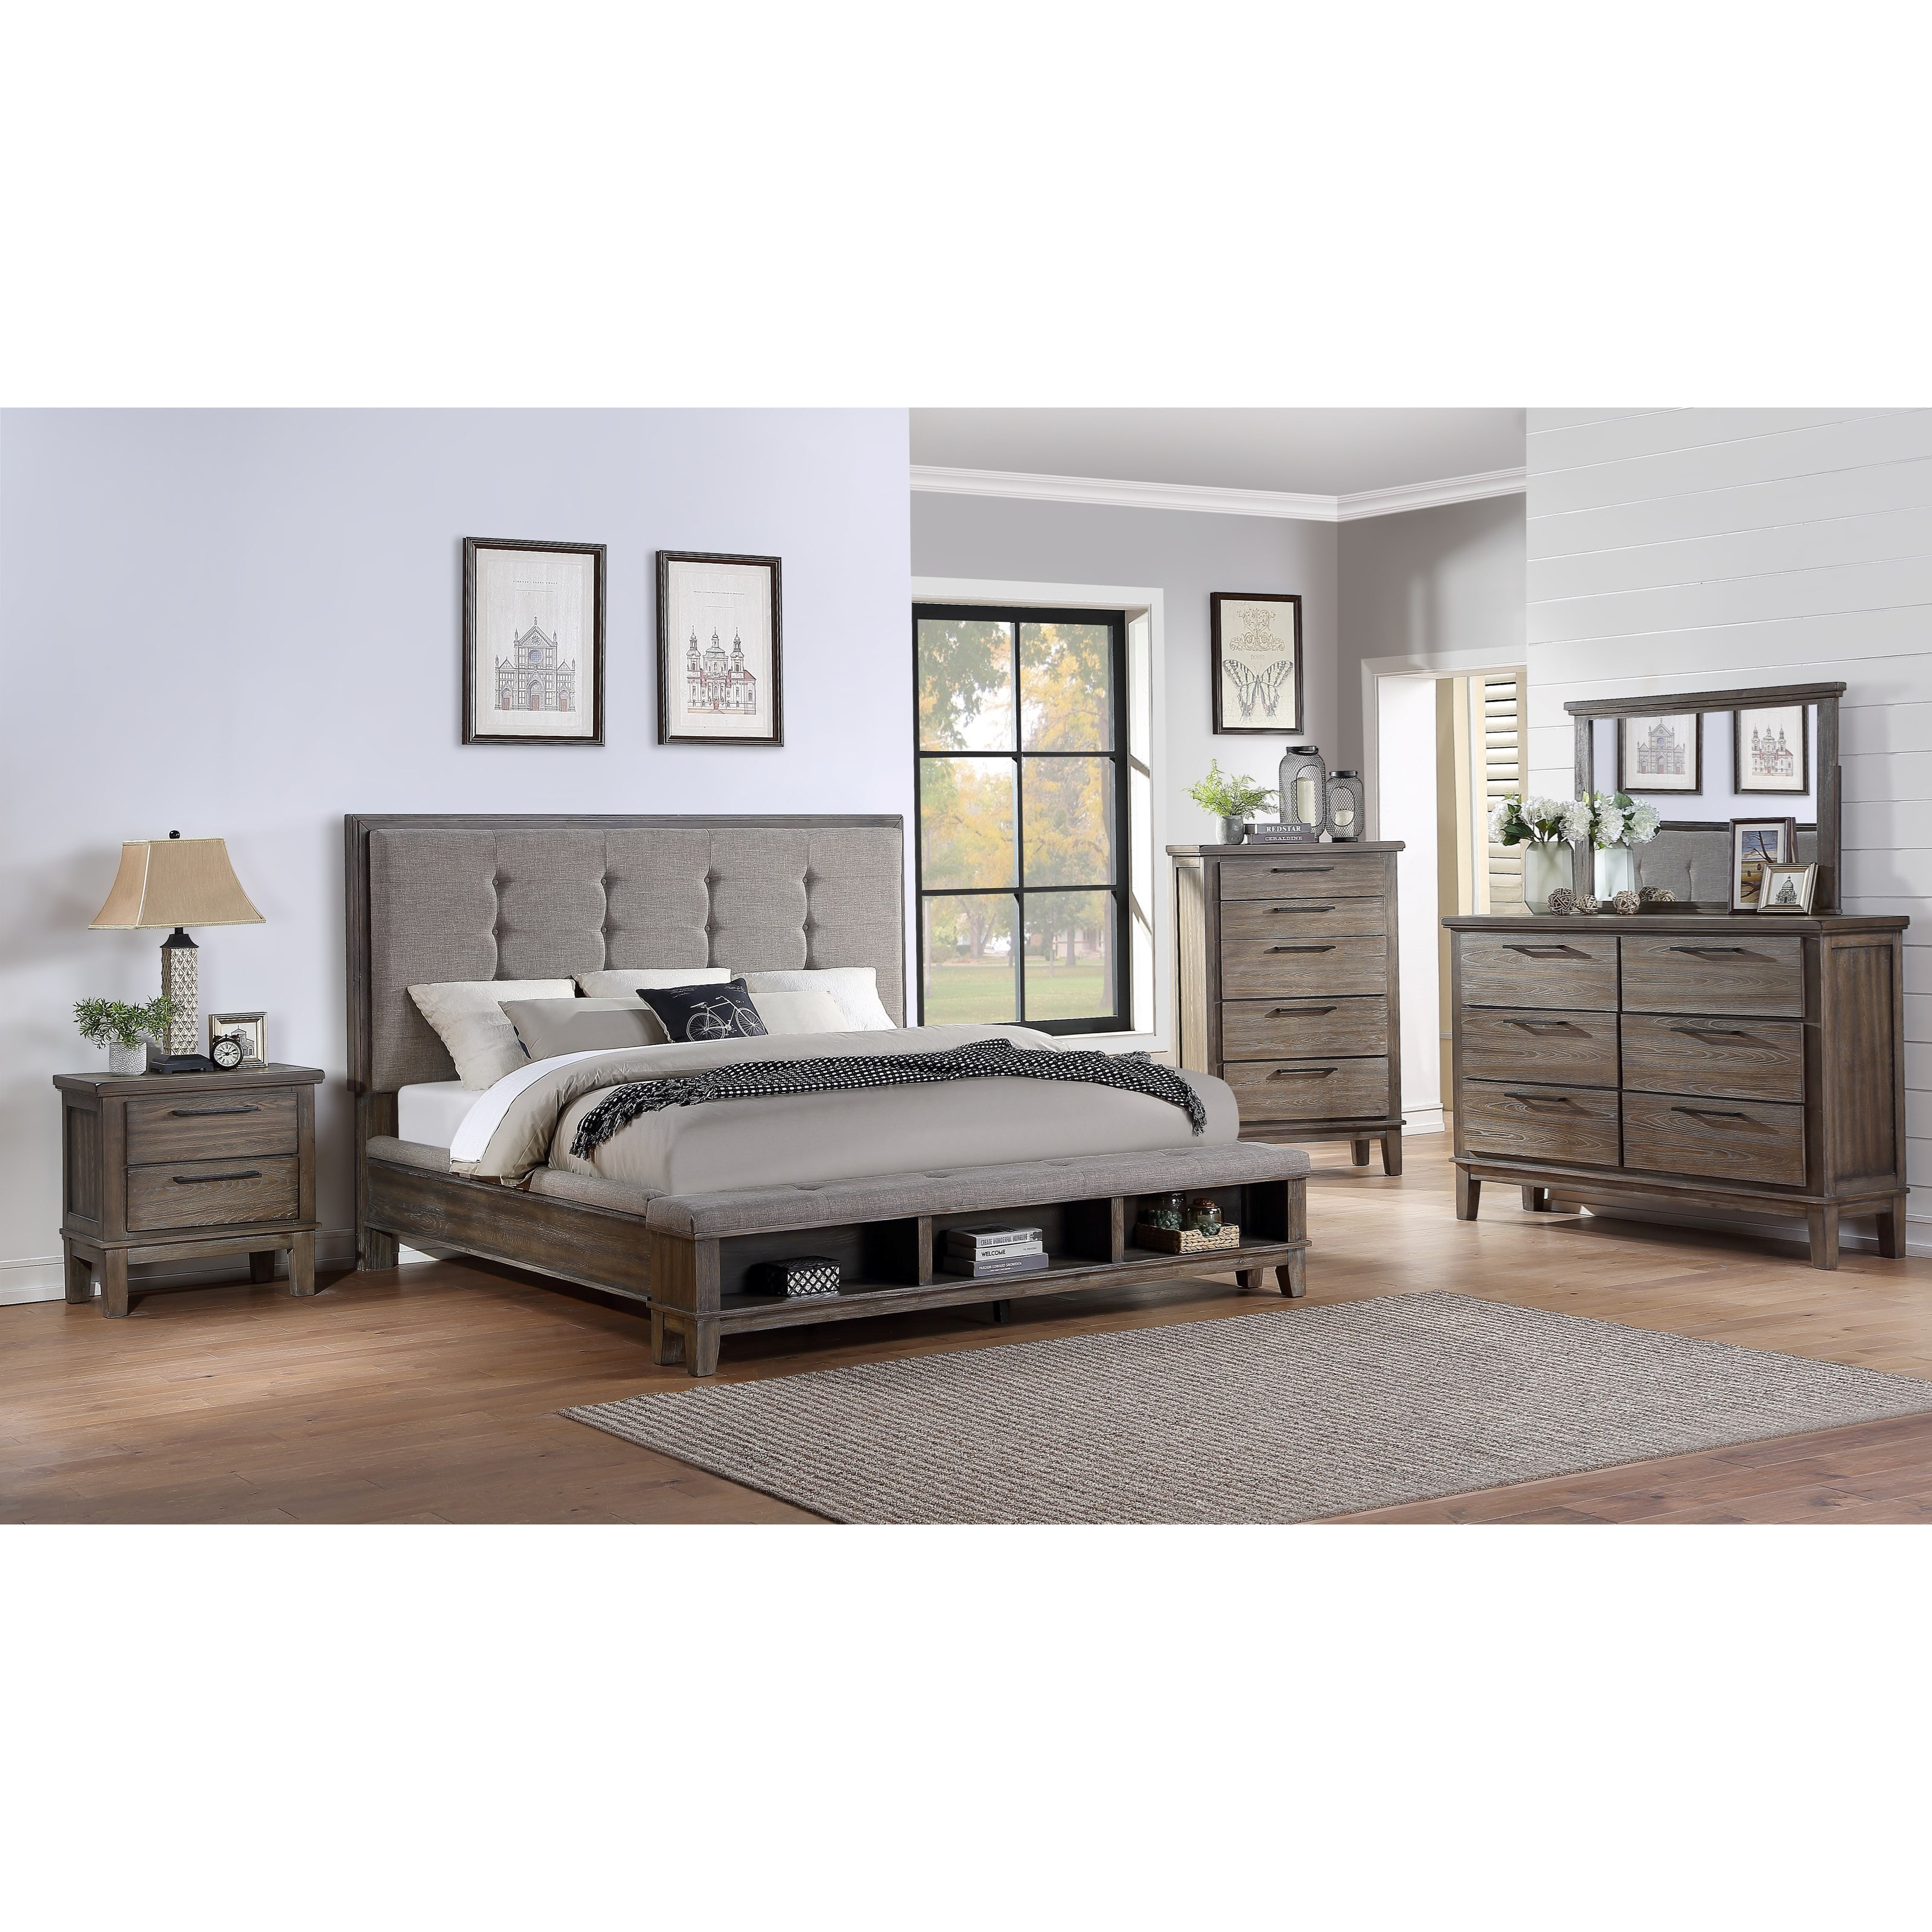 Cagney King Bedroom Group - No Chest by New Classic at Beck's Furniture